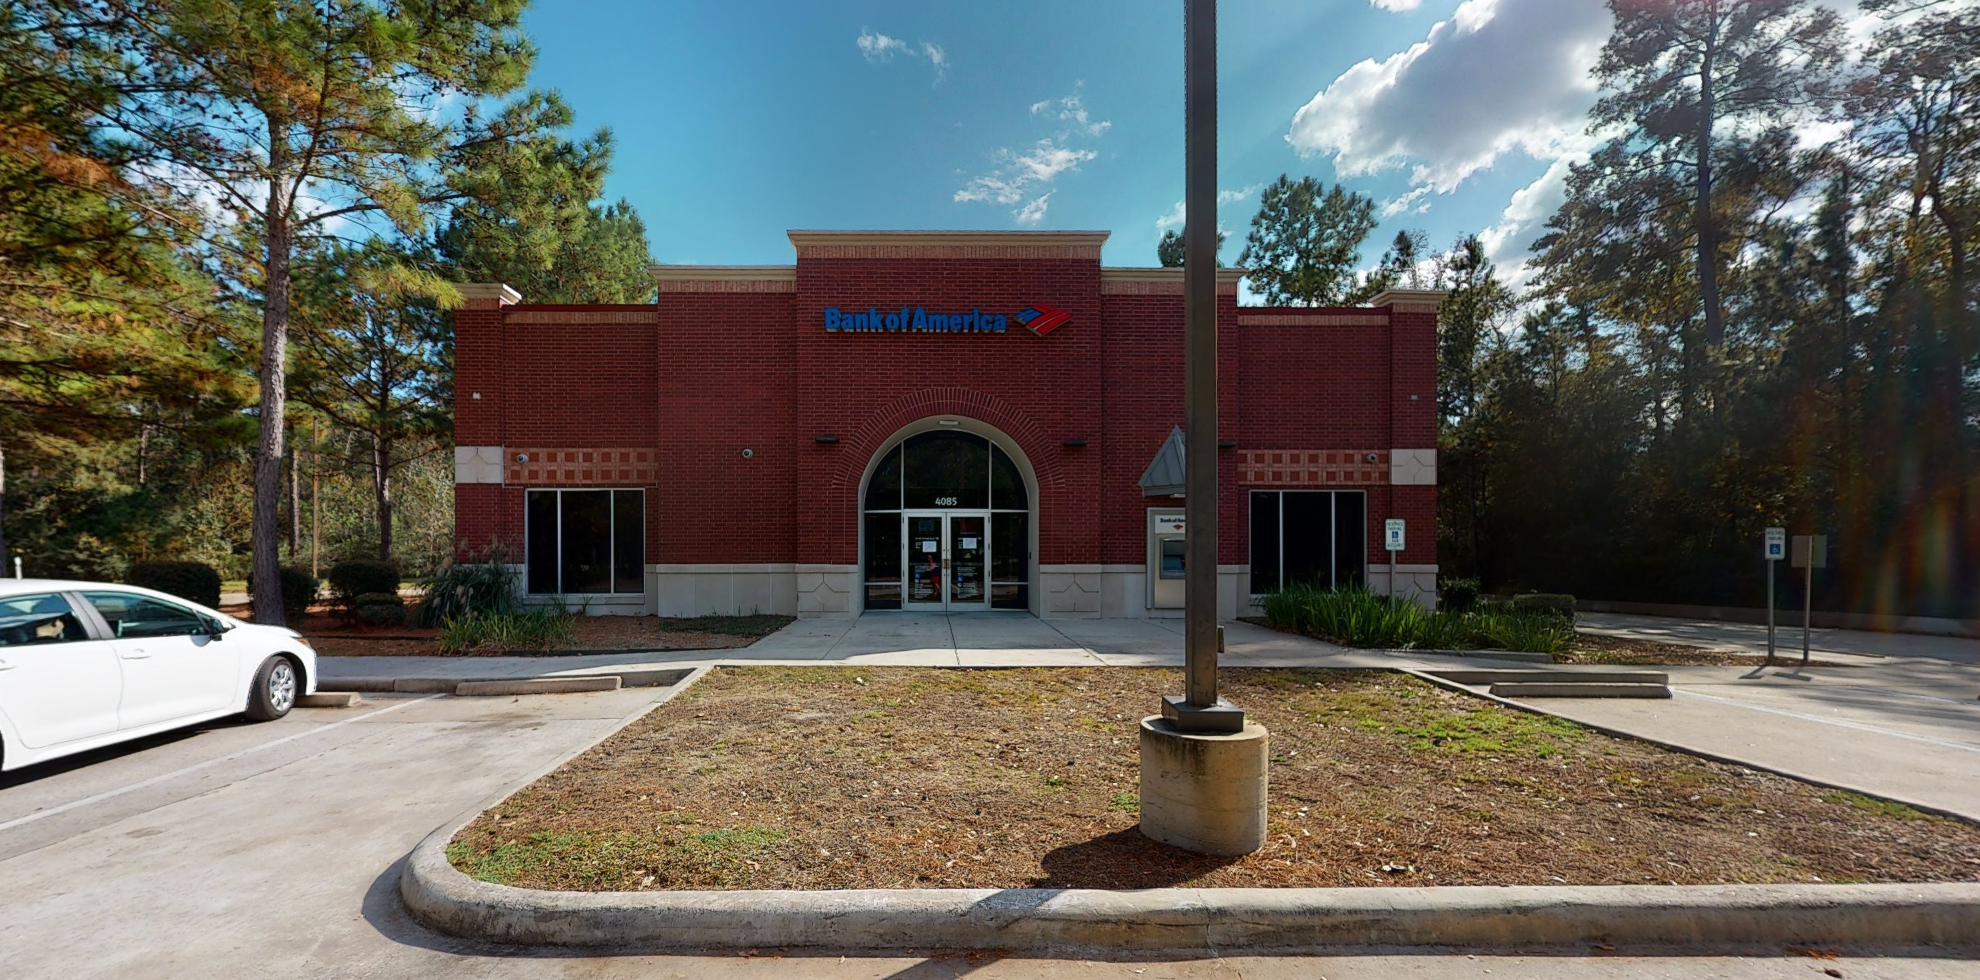 Bank of America financial center with drive-thru ATM   4085 College Park Dr, Conroe, TX 77384